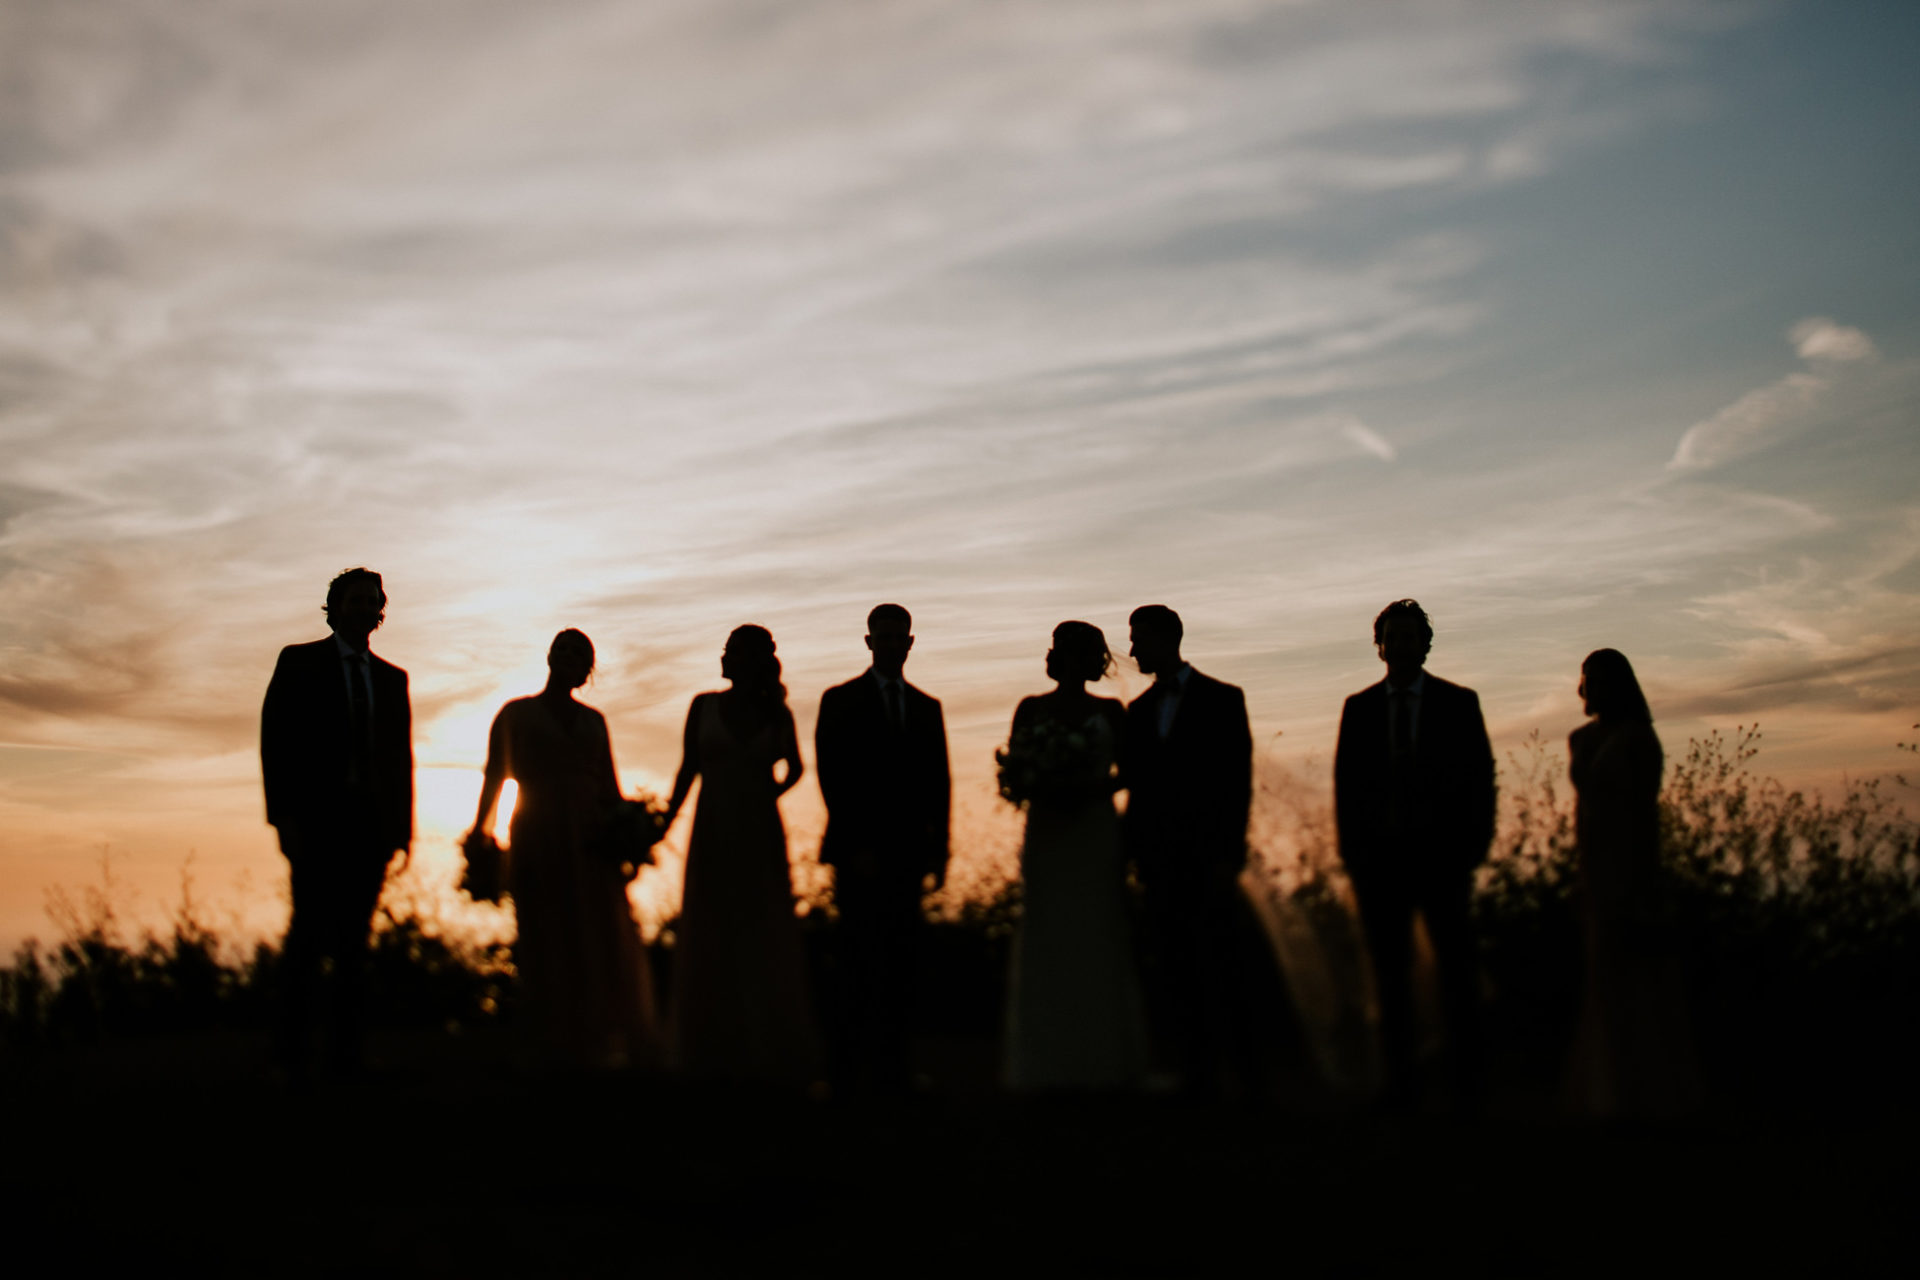 best-top-los-angeles-destination-wedding-photographer-hipster-modern-quirky-editorial-romantic-epic-33-bridal-party-silhouette-sunset-redondo-beach-palos-verdes